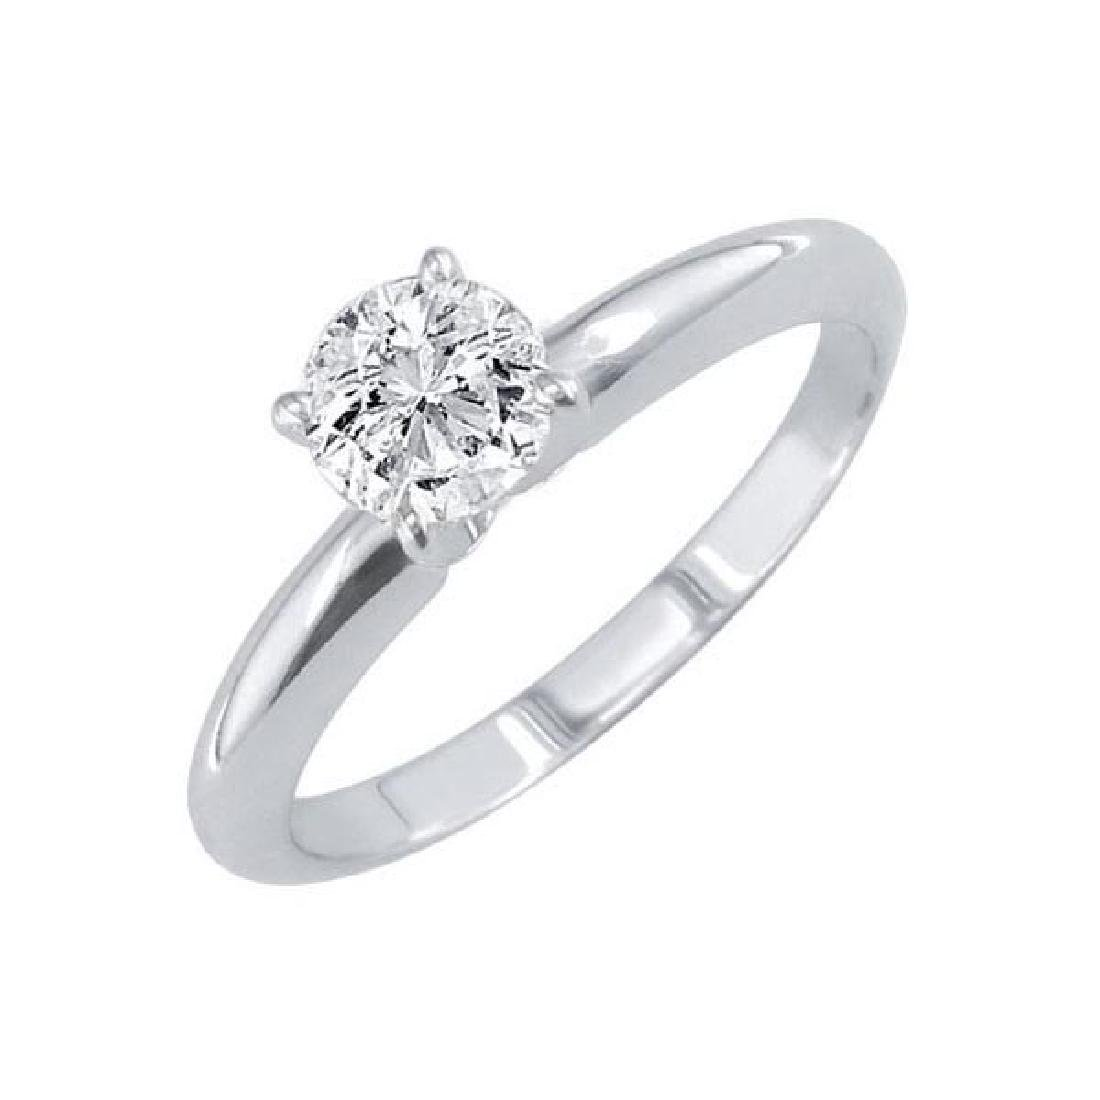 Certified 0.91 CTW Round Diamond Solitaire 14k Ring D/S